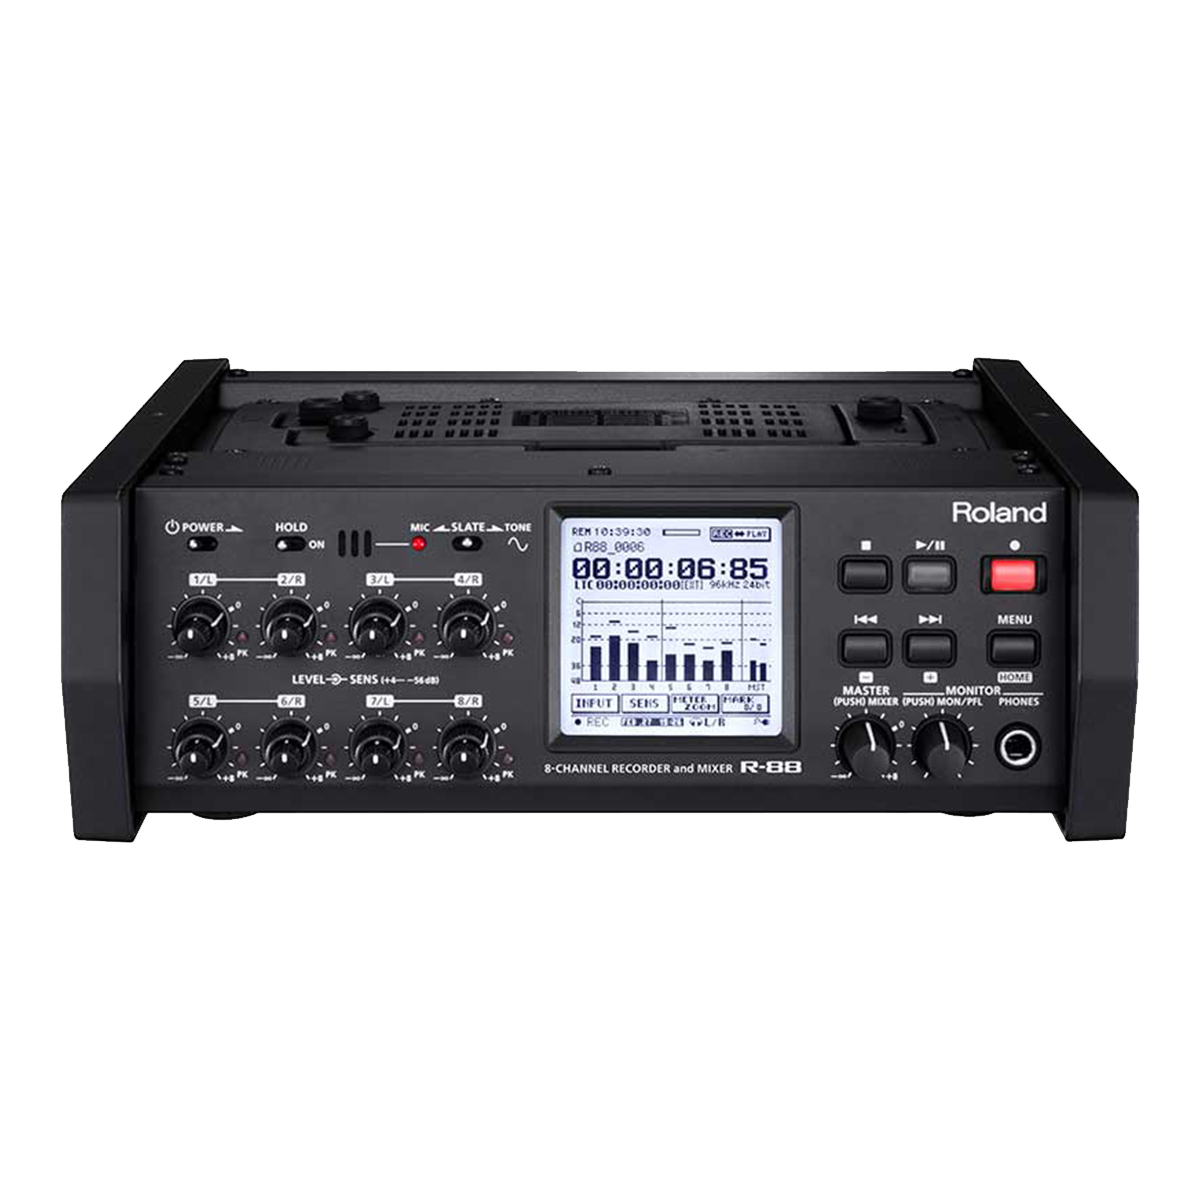 Roland R-88 8 Channel Recorder and Mixer